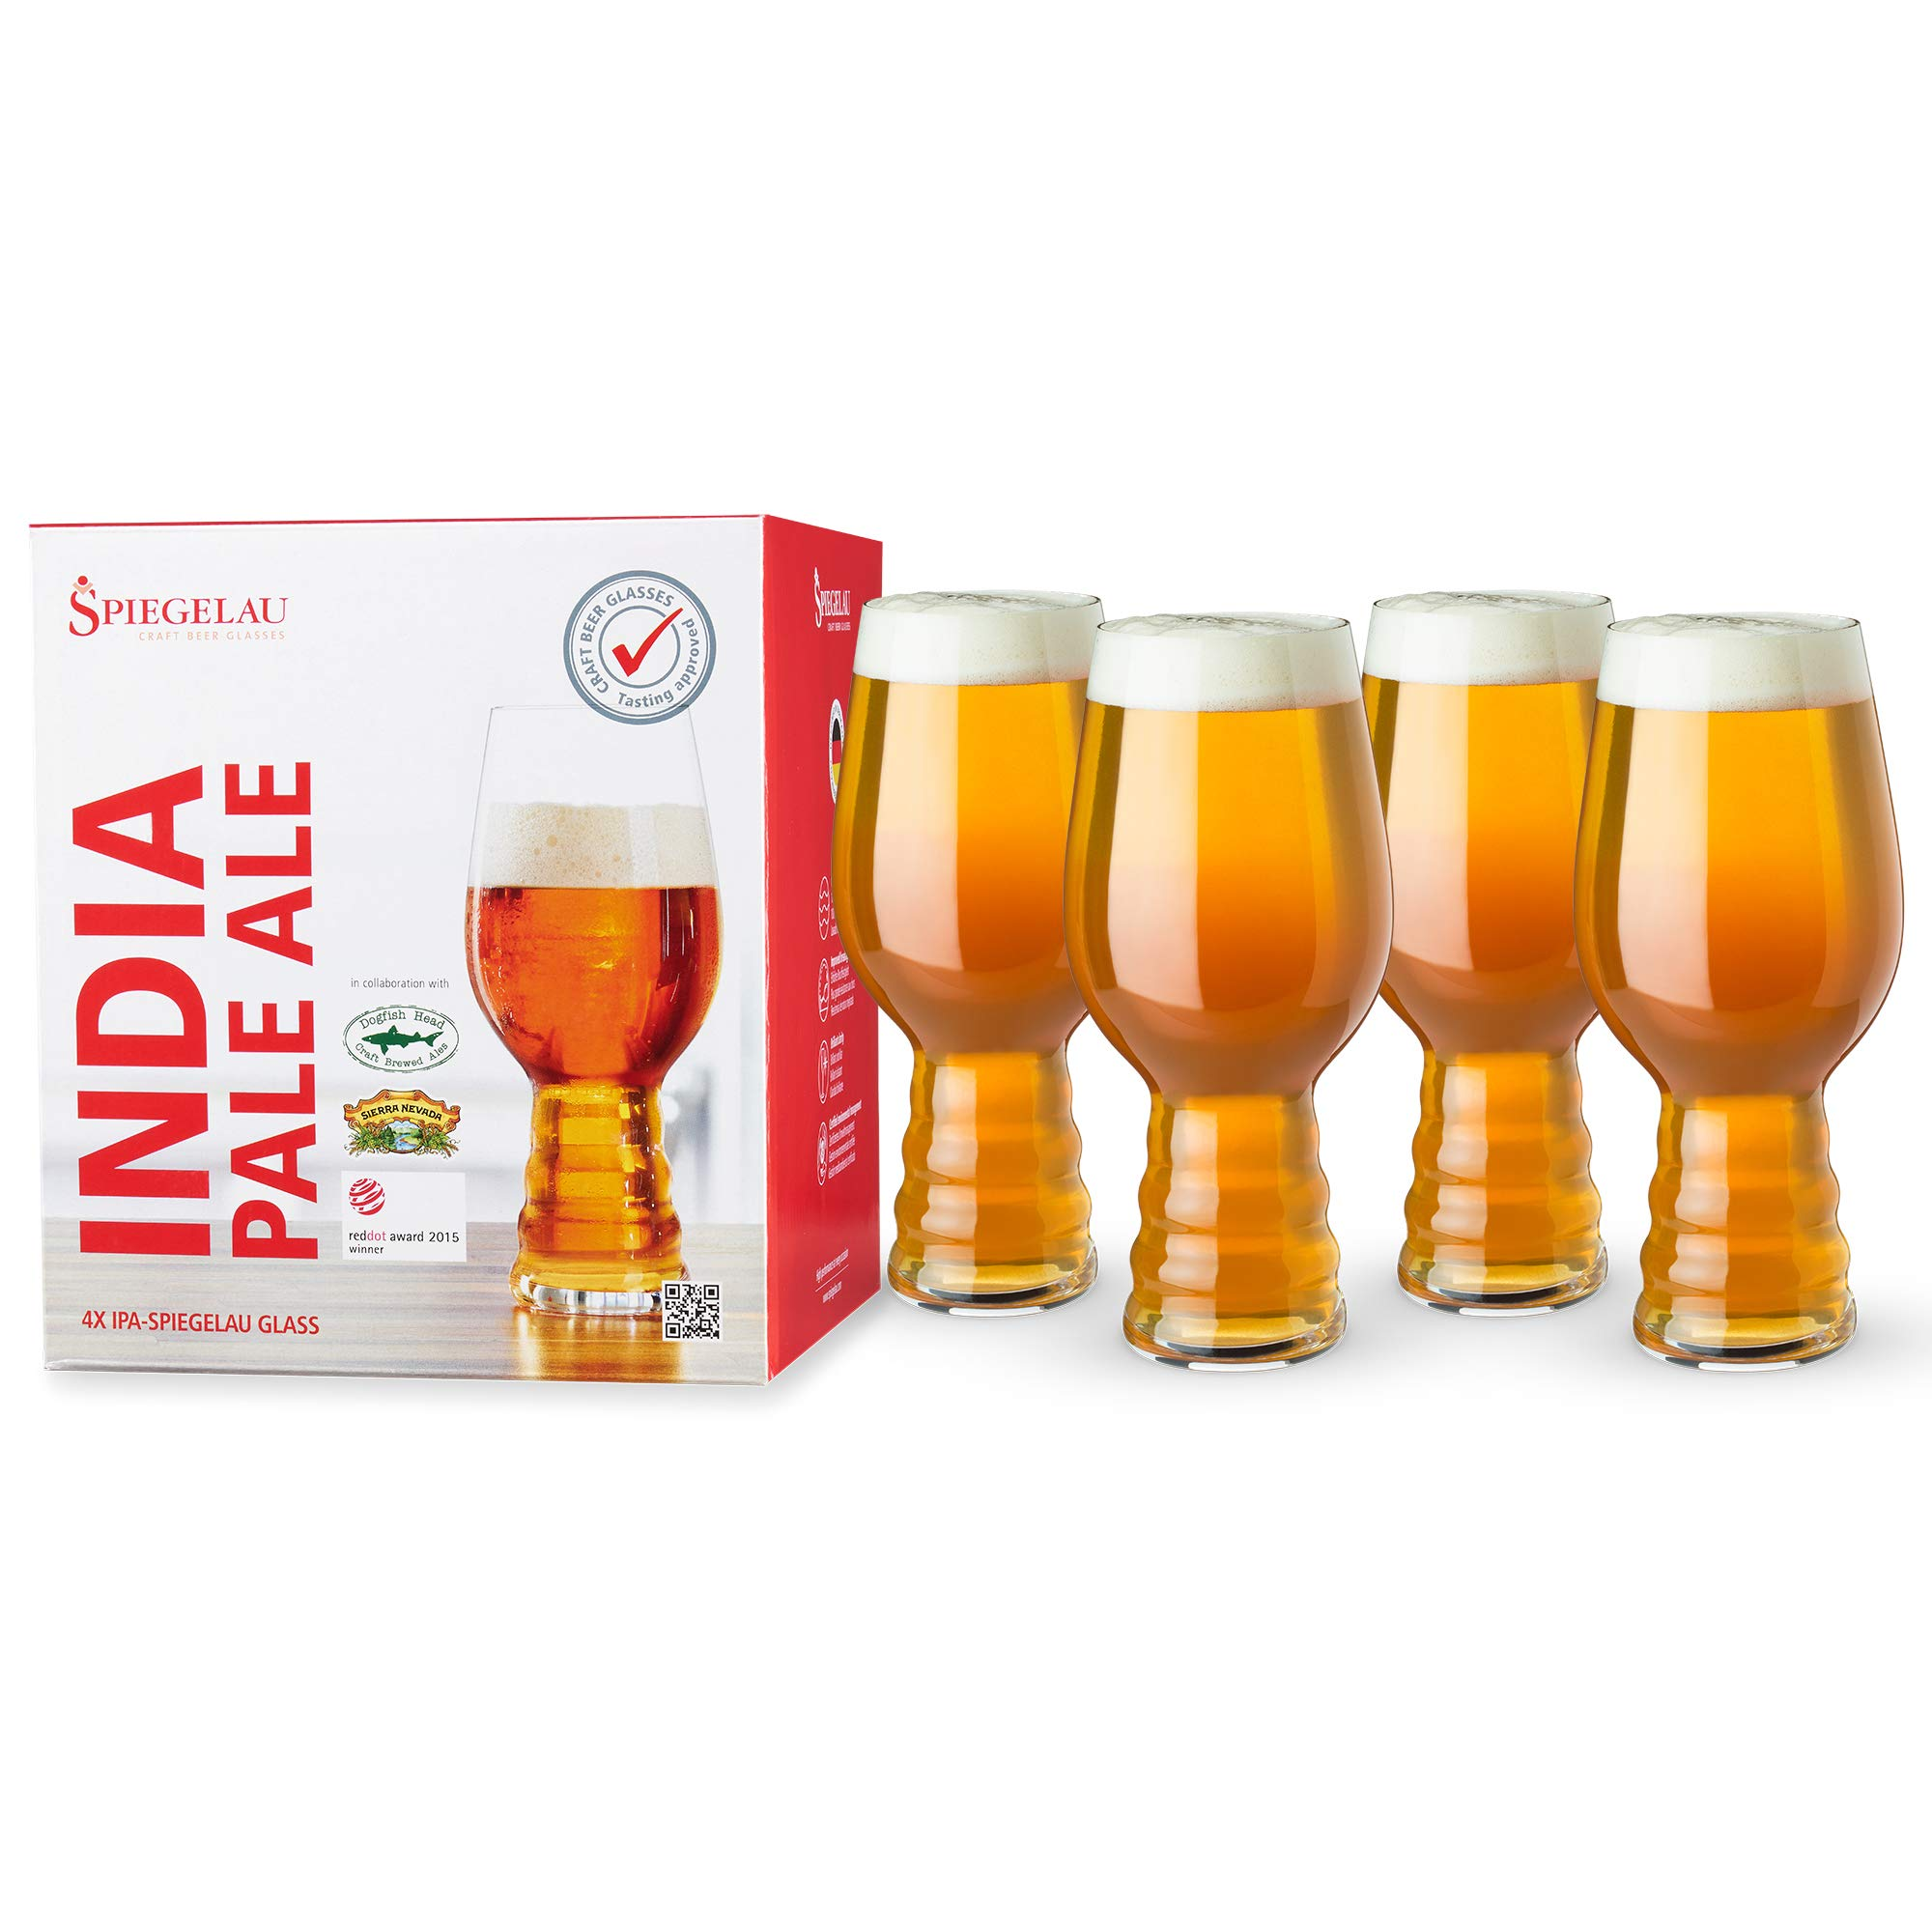 Spiegelau Craft IPA, Set of 4 European-Made Lead-Free Crystal, Modern, Dishwasher Safe, Professional Quality Beer Pint Glass Gift Set, 19.1 oz